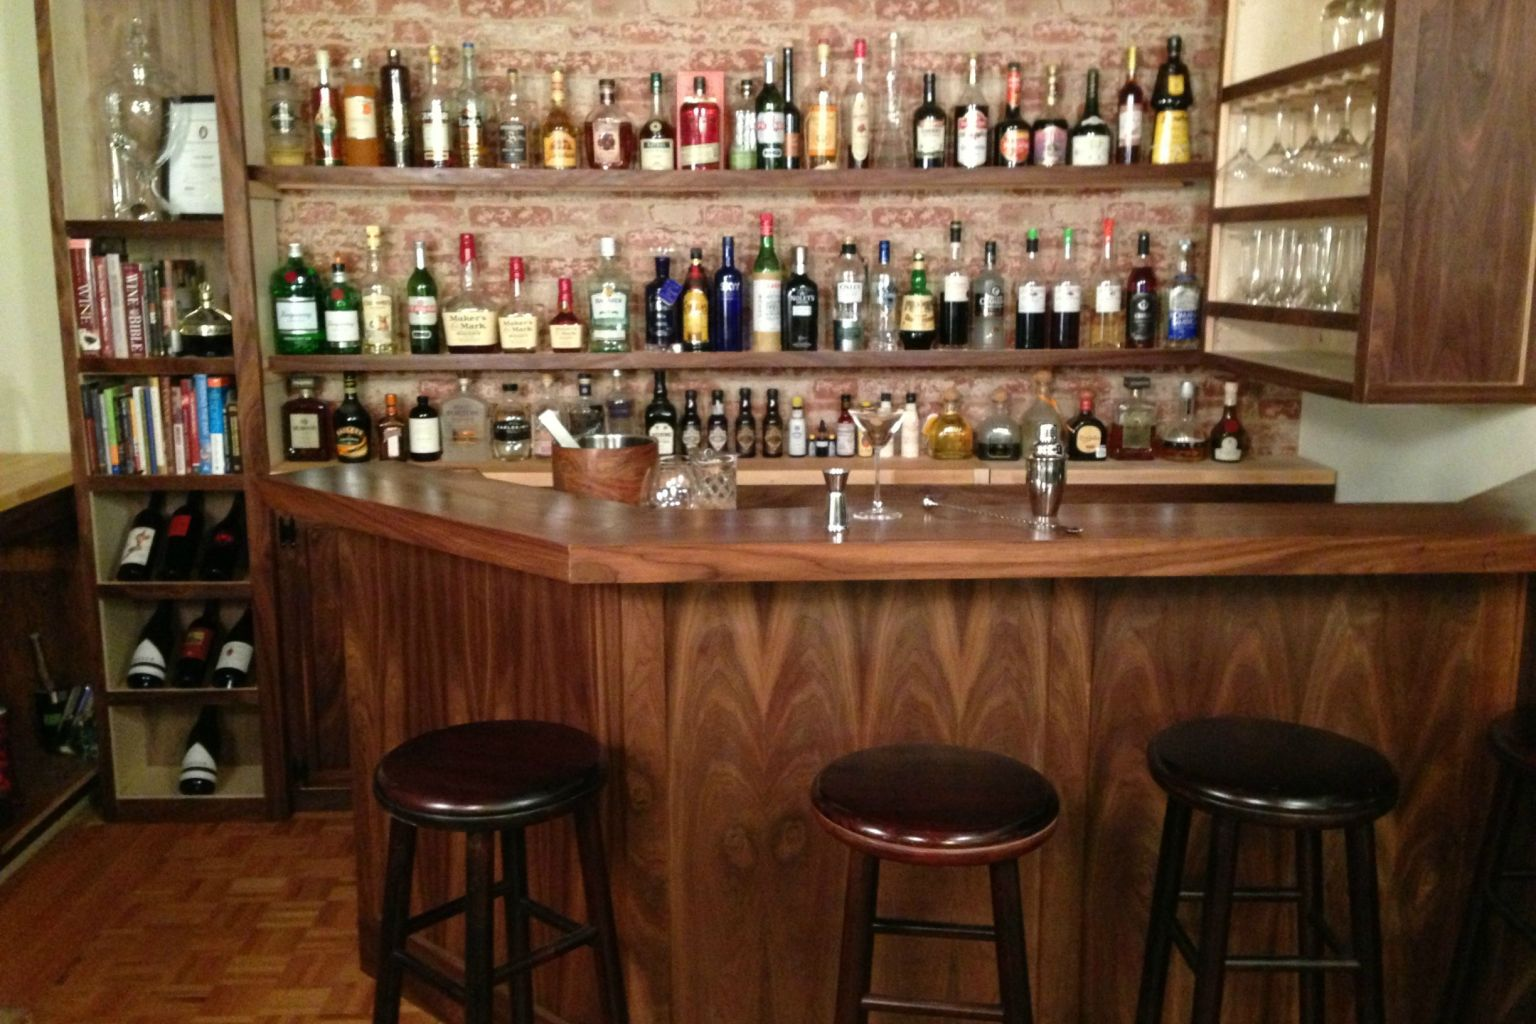 Home Bar Built By A Professional Bartender Takes DIYing To A New Level  (PHOTO) | HuffPost